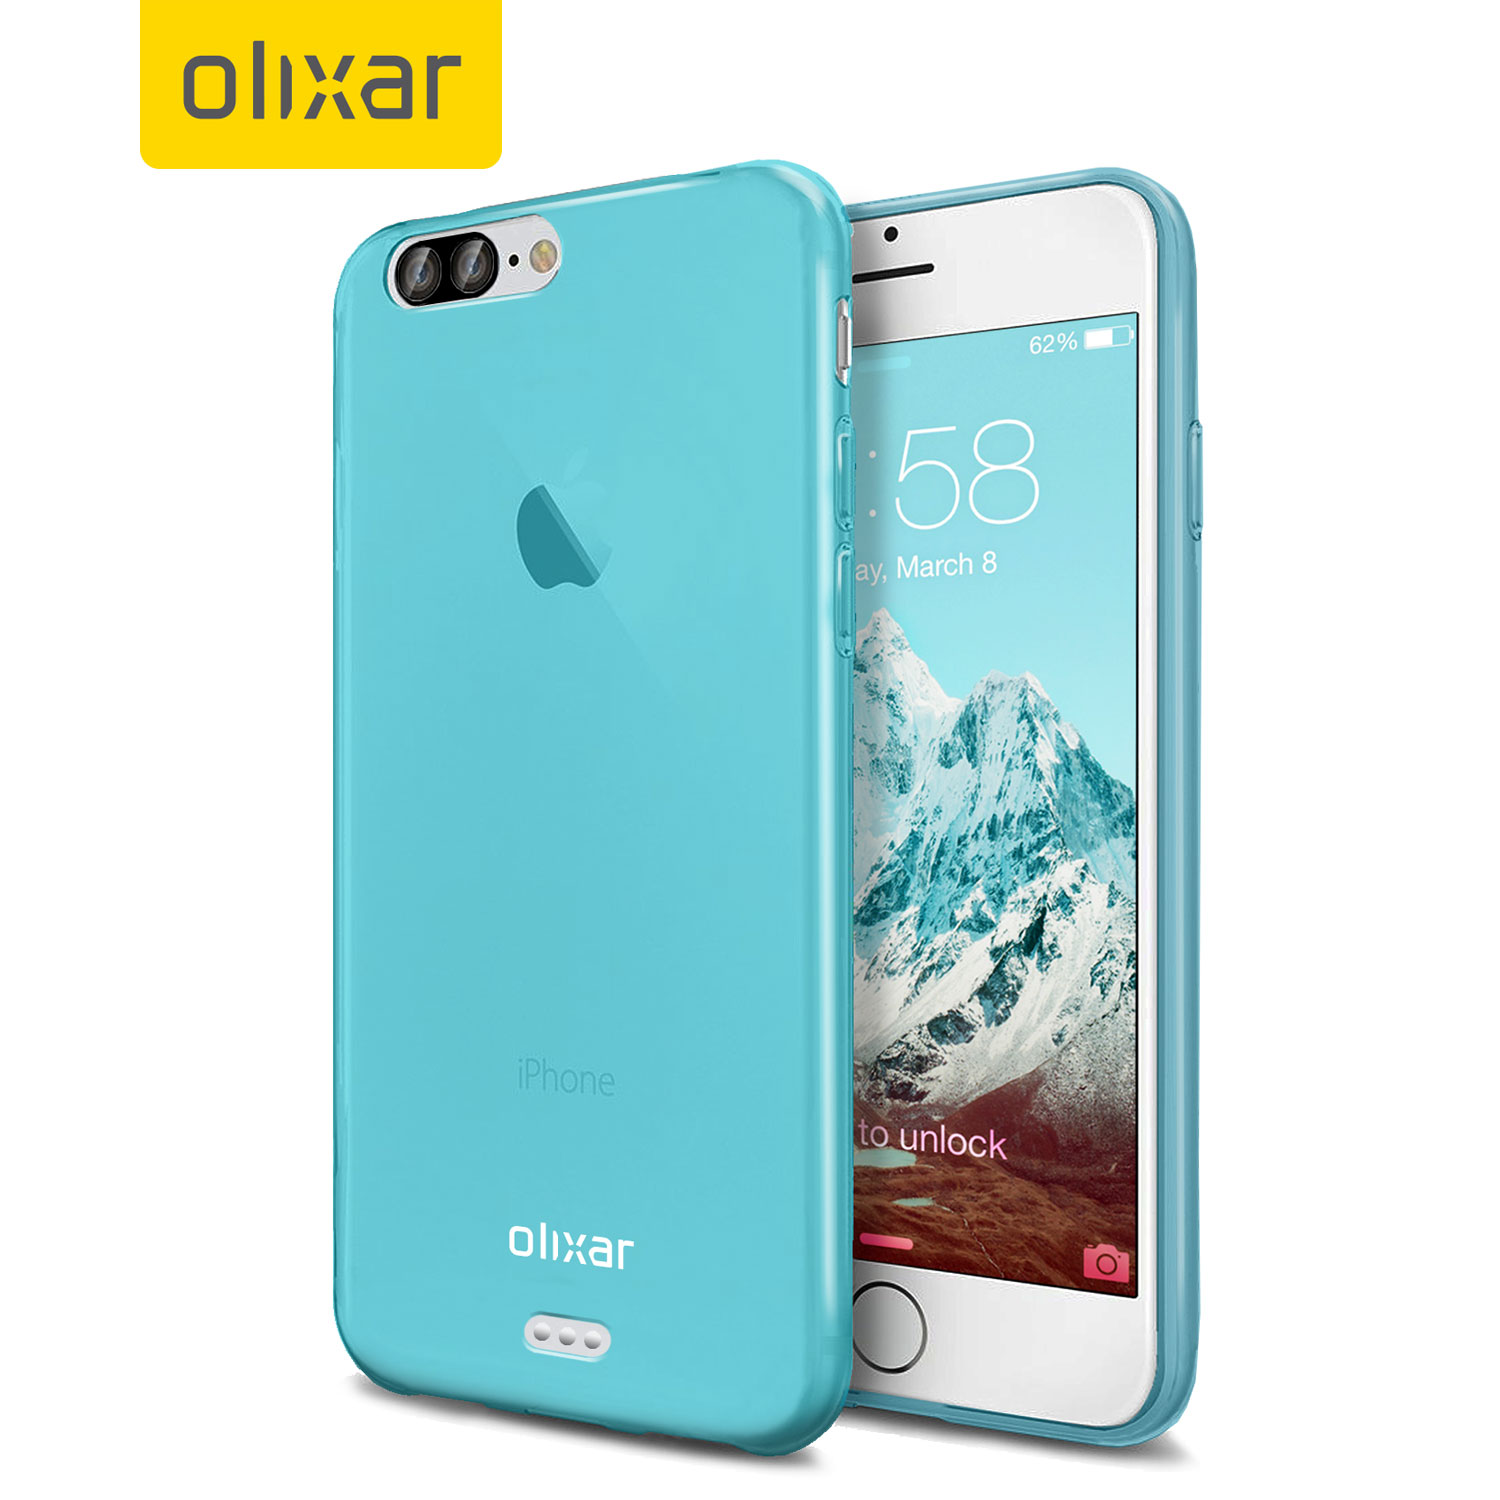 iPhone-7-and-7-Plus-case-images-by-Olixar-4